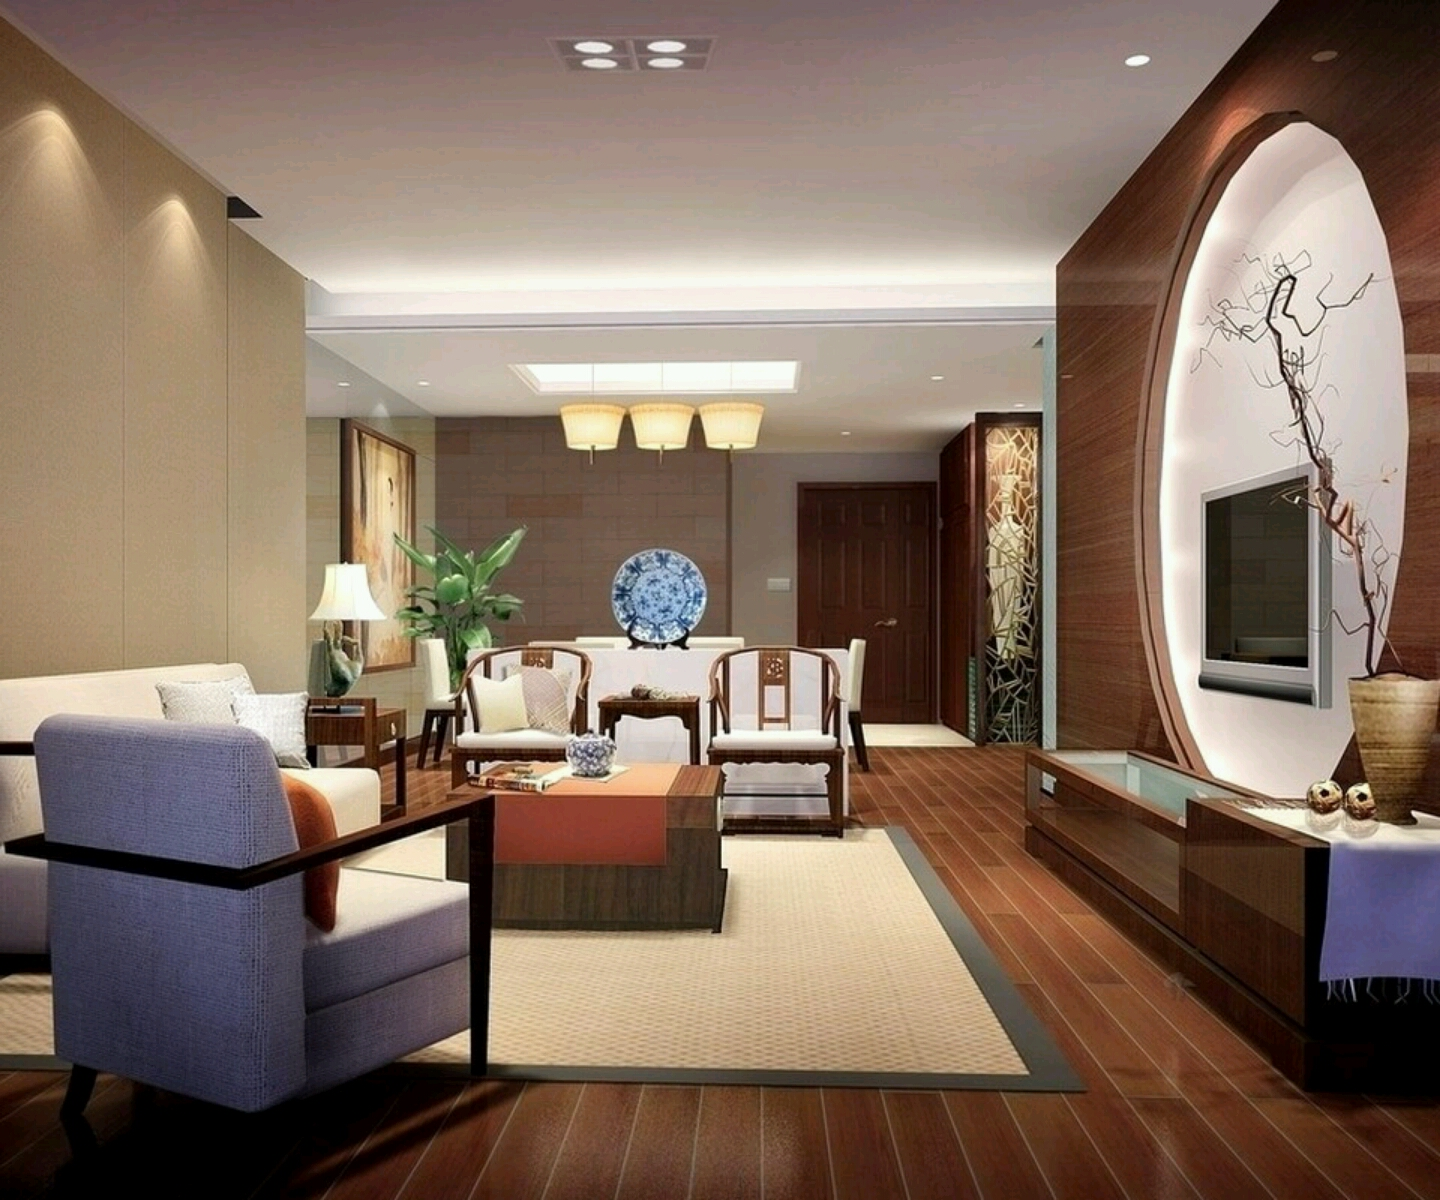 Luxury homes interior decoration living room designs ideas for Home interior design living room